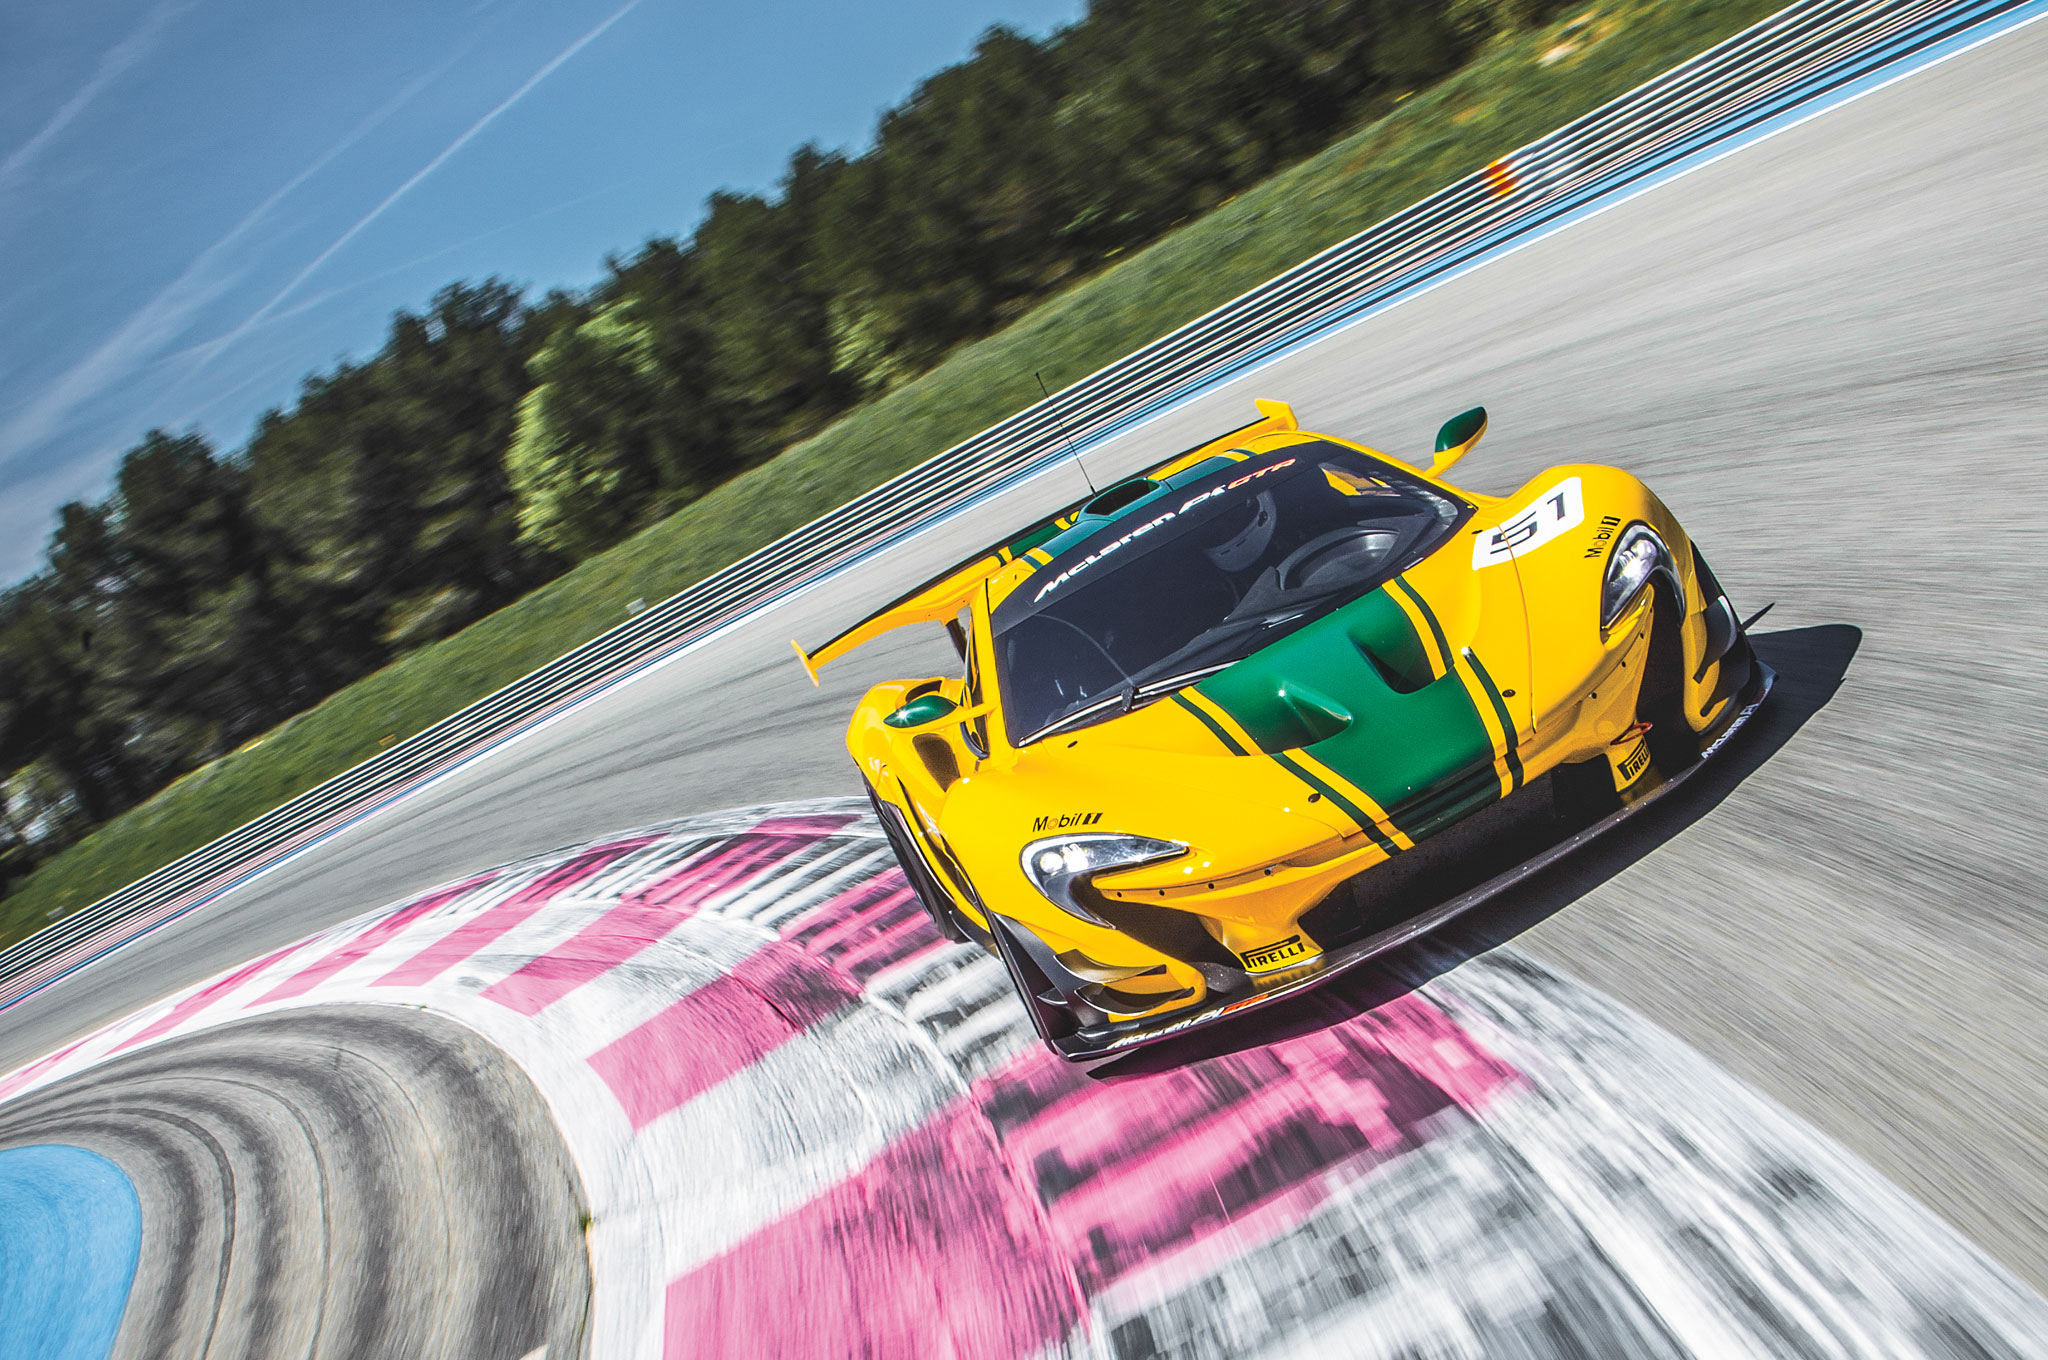 The 986-hp P1 GTR can easily outstrip race cars, as it proved at the Paul Ricard racetrack.